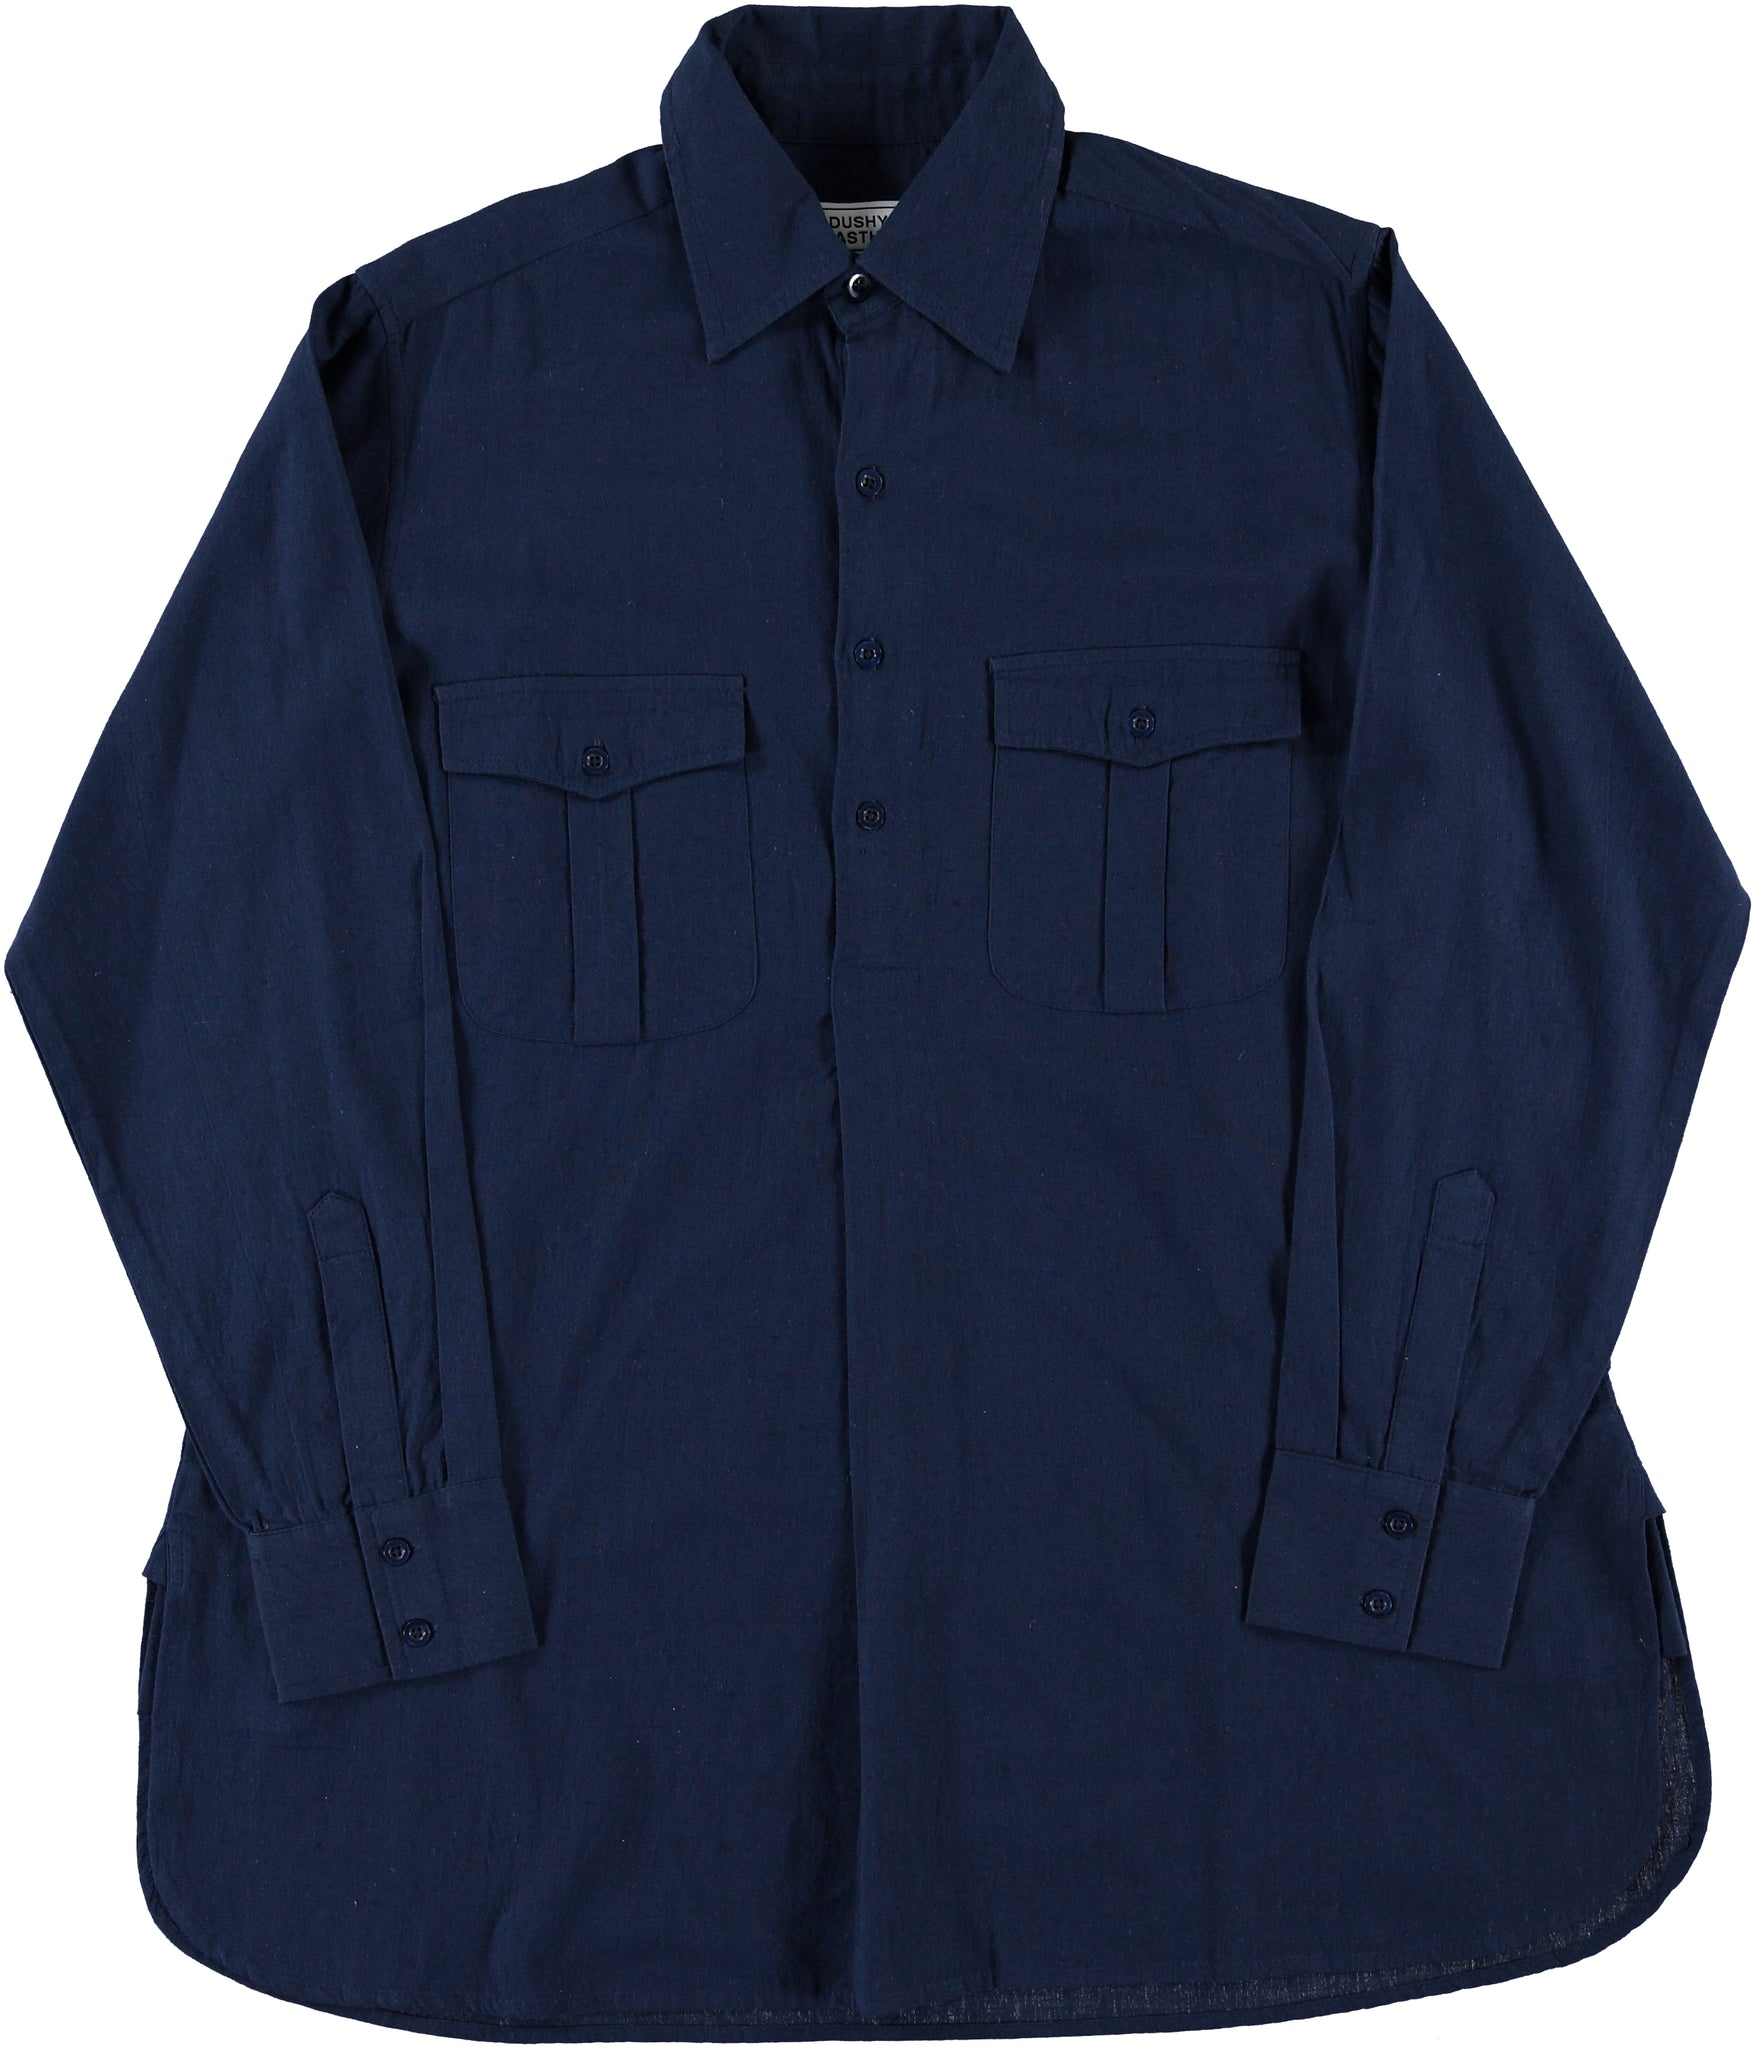 'The Kameez' Oversized Shirt in Mood Indigo